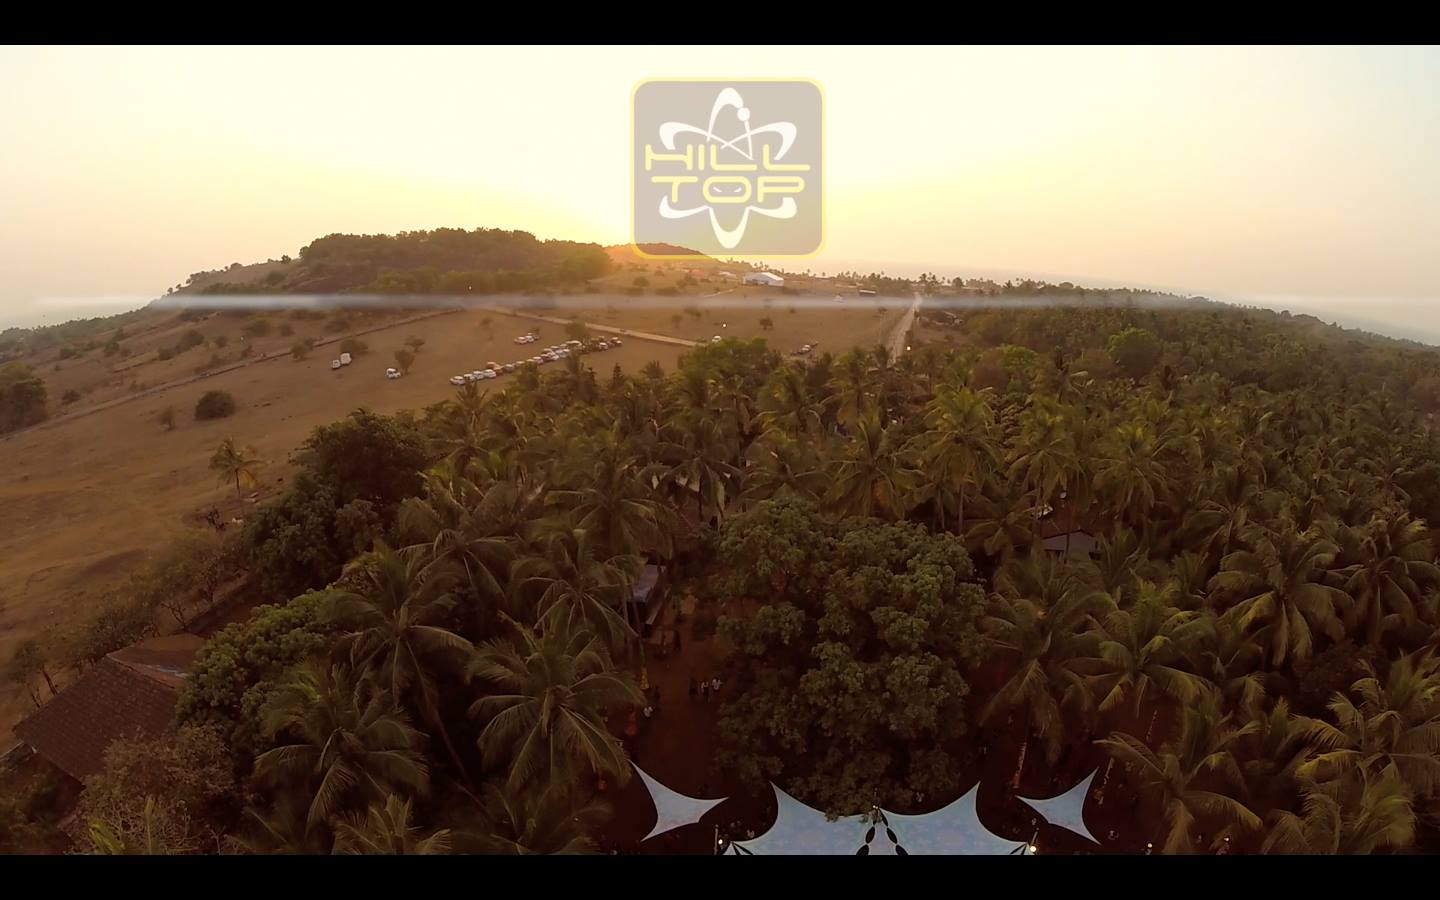 Hill top festival à Goa 2016 - 2015